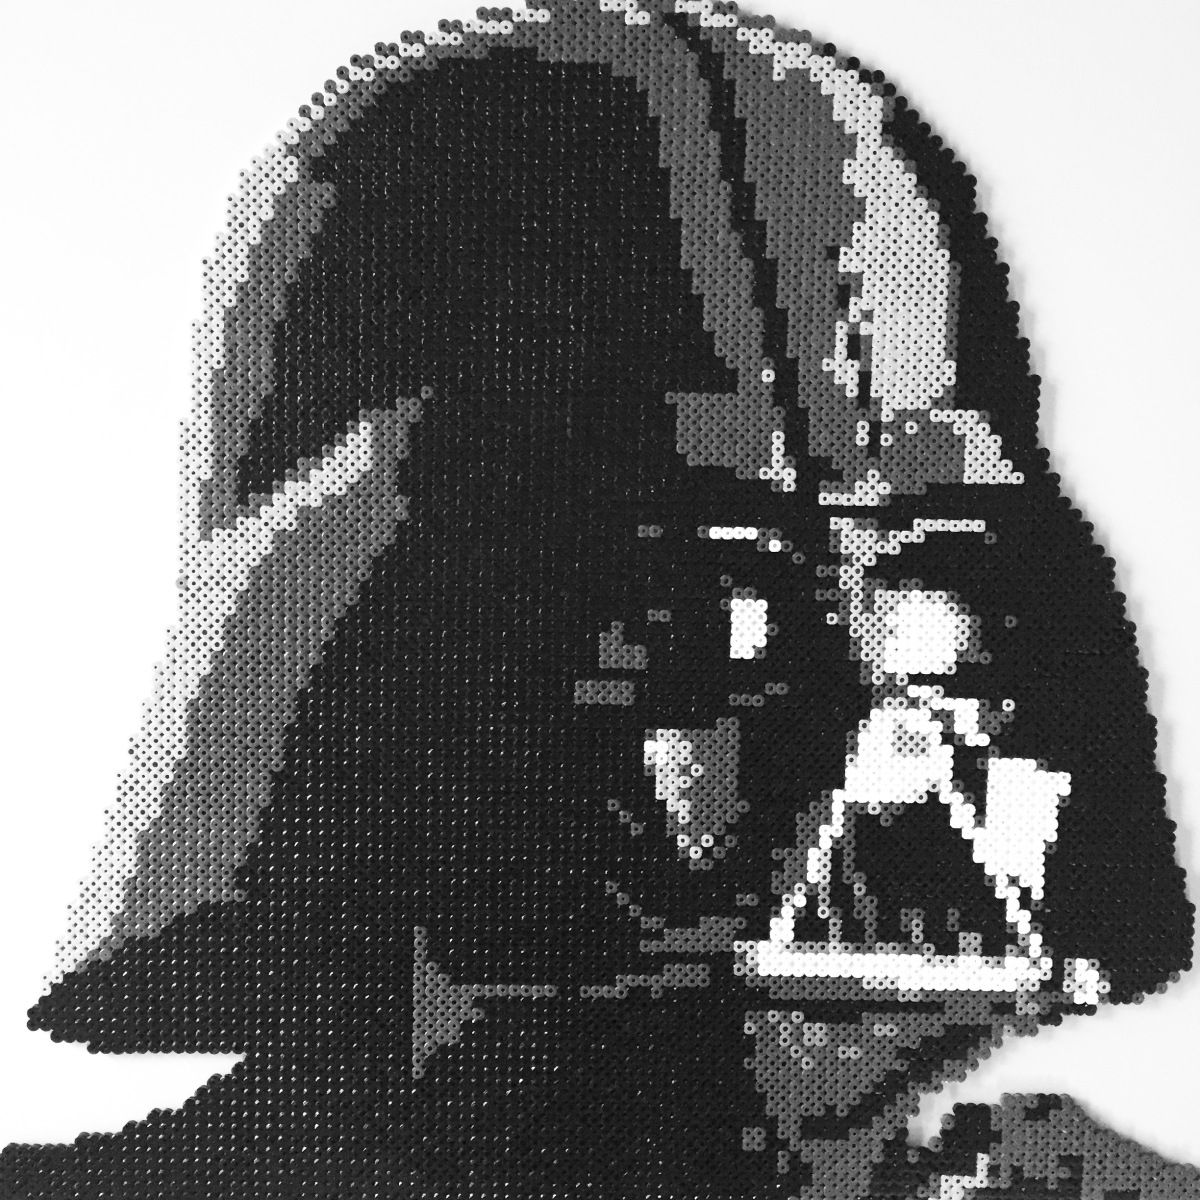 Darth Vader Star Wars Perler Beads By Dissected Pixels